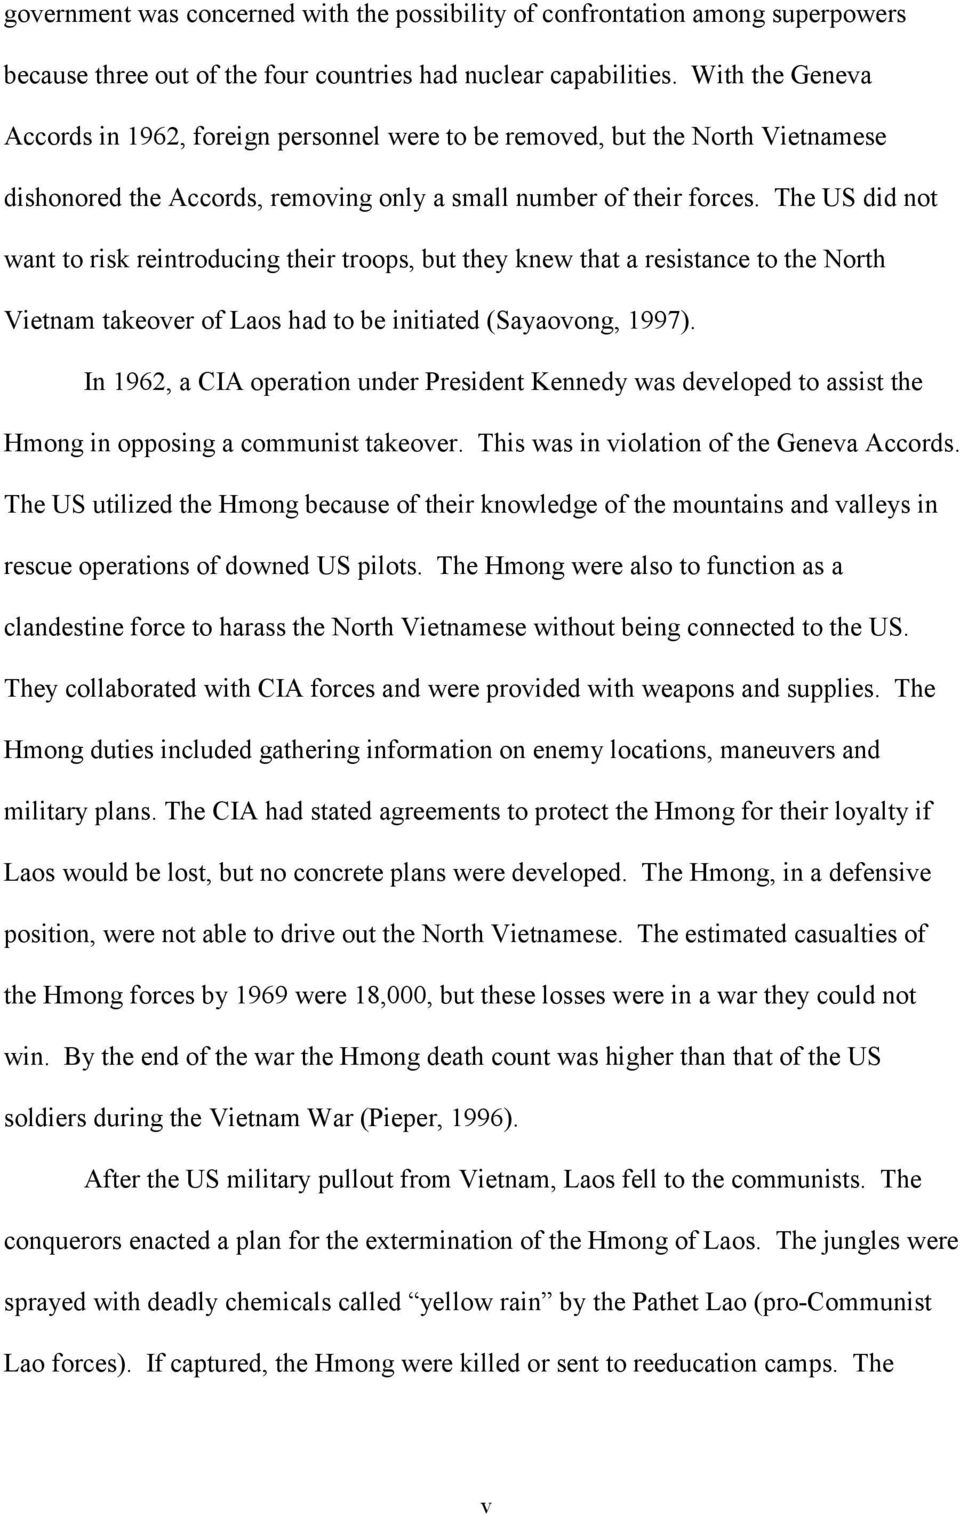 The US did not want to risk reintroducing their troops, but they knew that a resistance to the North Vietnam takeover of Laos had to be initiated (Sayaovong, 1997).